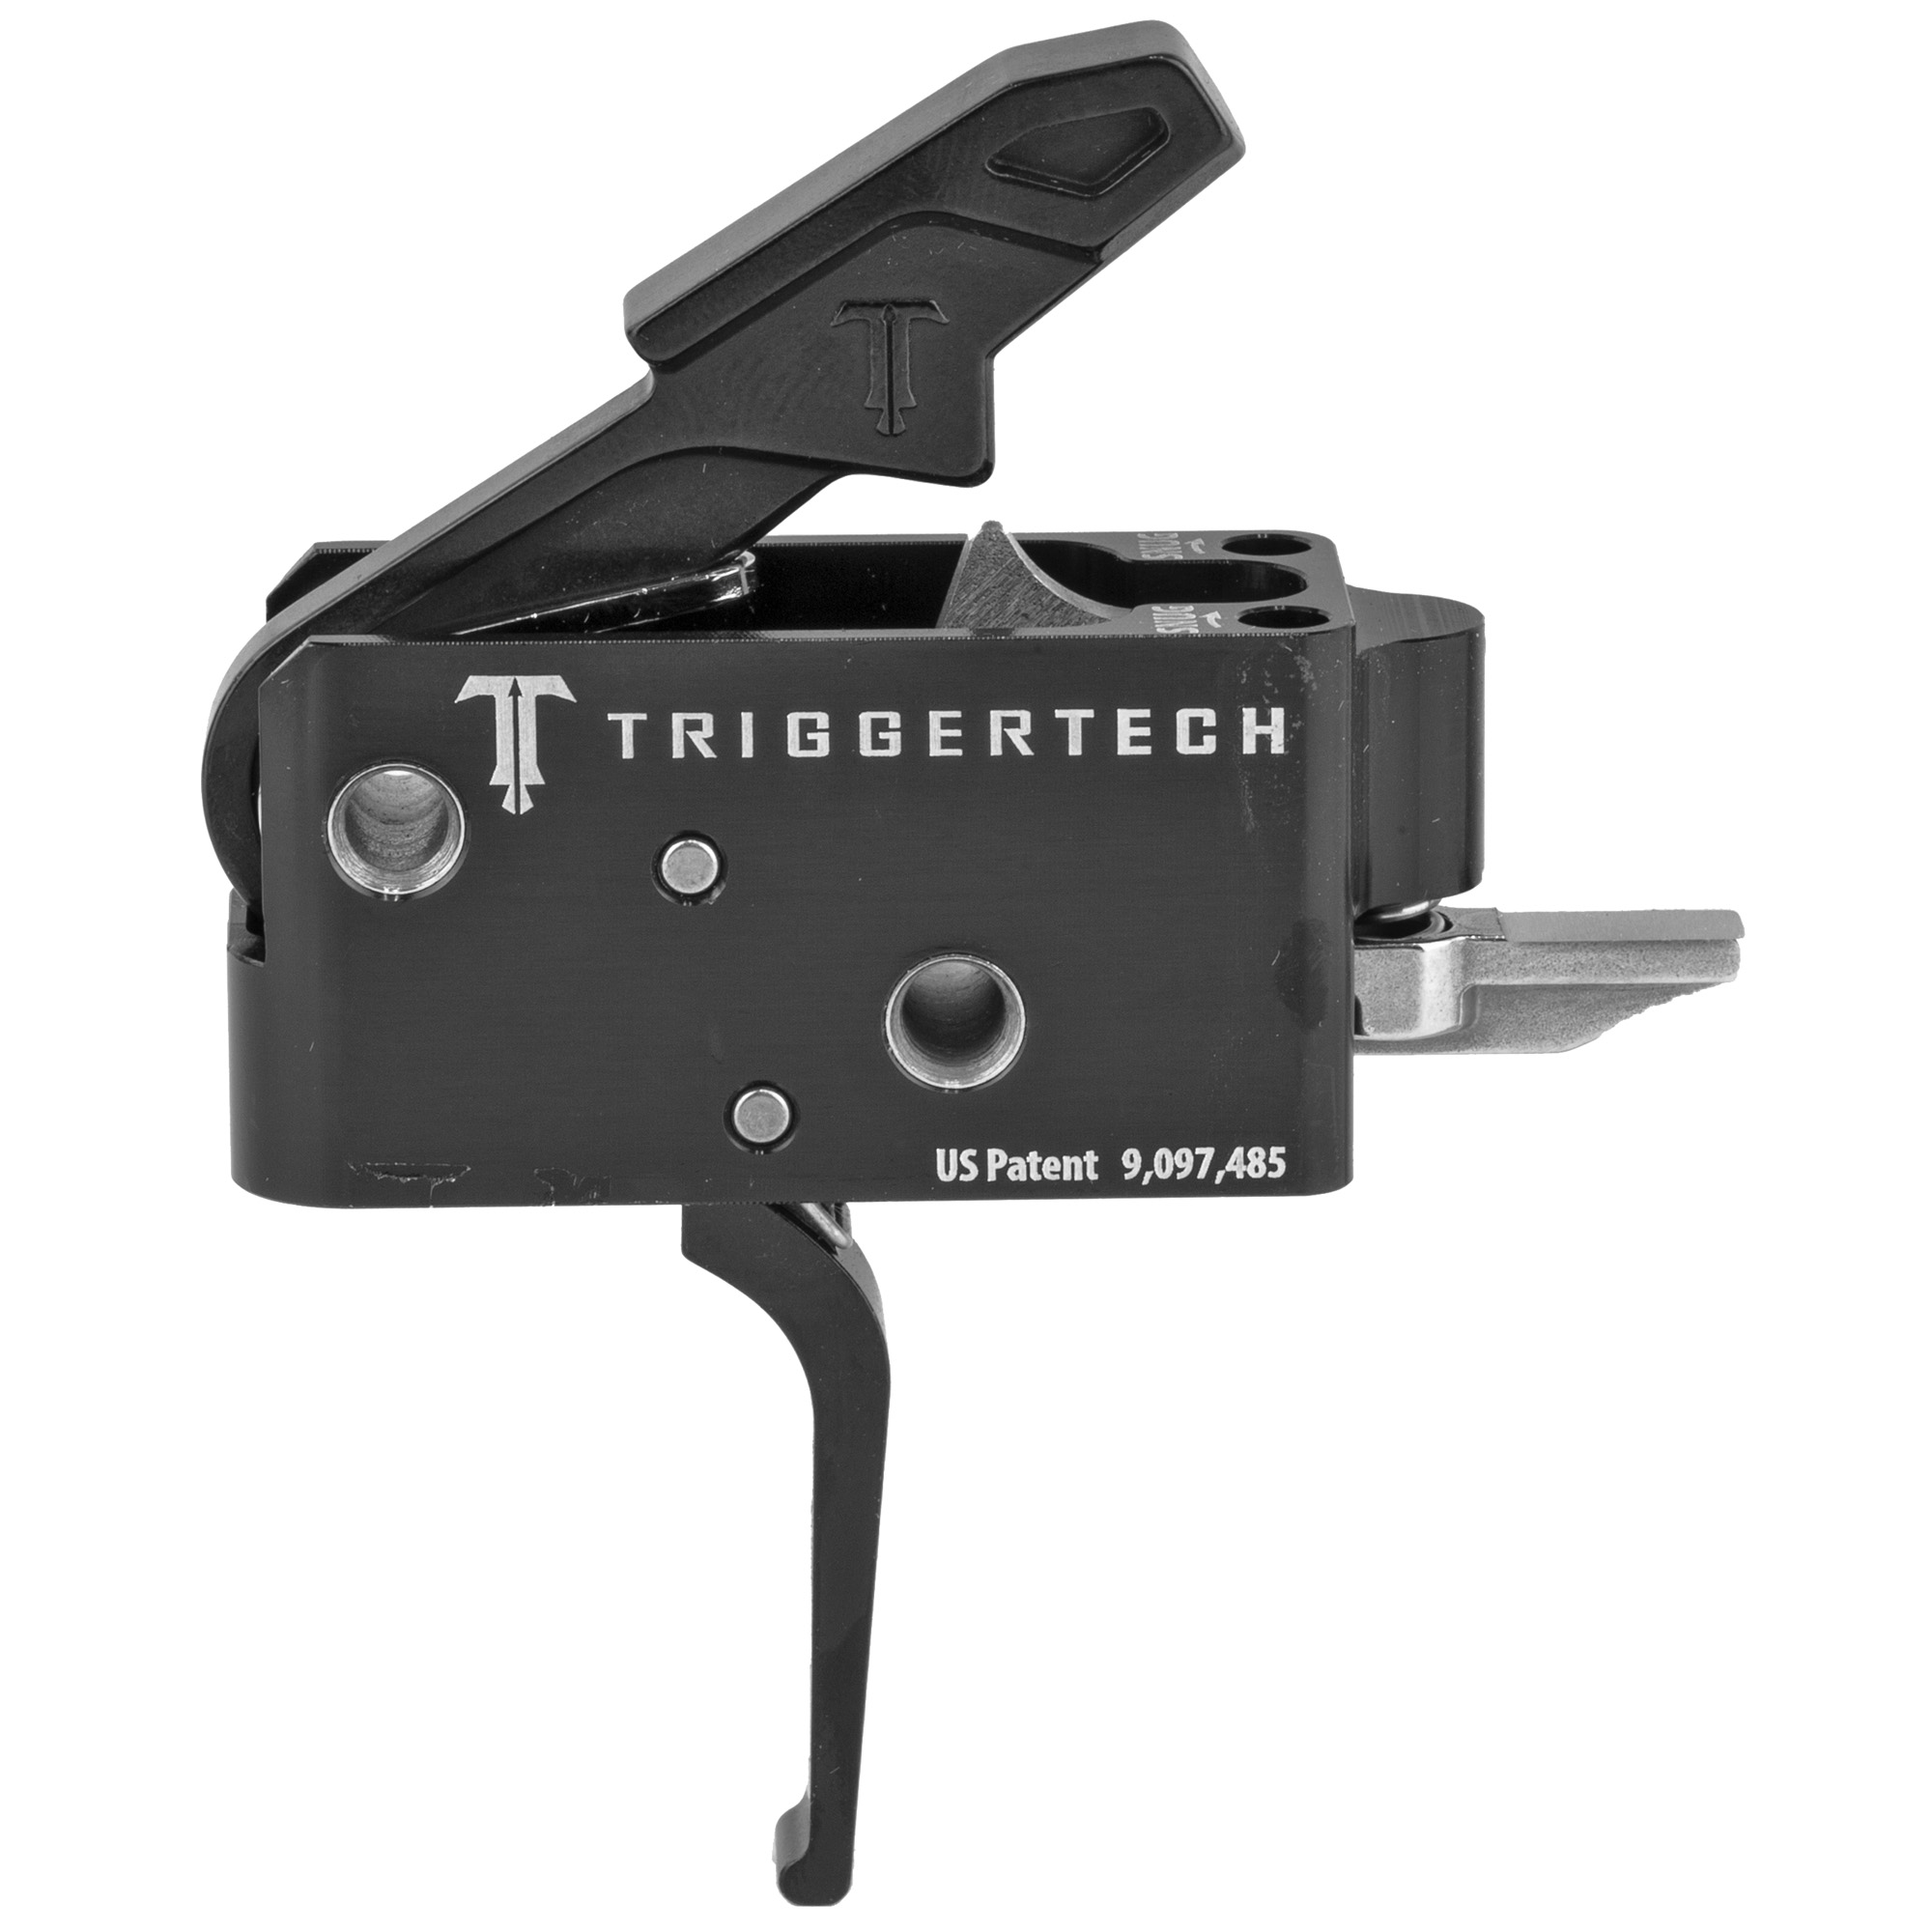 """The Competitive AR Primary Trigger is a non-adjustable trigger designed to enhancing the accuracy and precision of an AR for roles that consistently favor a lighter pull weight. Featuring Frictionless Release Technology"""" this drop-in AR trigger has a short"""" two-stage action"""" designed to feel like a 1911 trigger"""" that provides a true zero-creep break"""" extremely short over-travel"""" a sub 0.030"""" tactical reset and offers outstanding reliability"""" even in the harshest environments. The pull weight is fixed at 3.5 lbs. and due to there being truly zero creep"""" most shooters report the pull weights feeling 0.5lbs lighter than a friction based trigger of the same measured pull weight."""